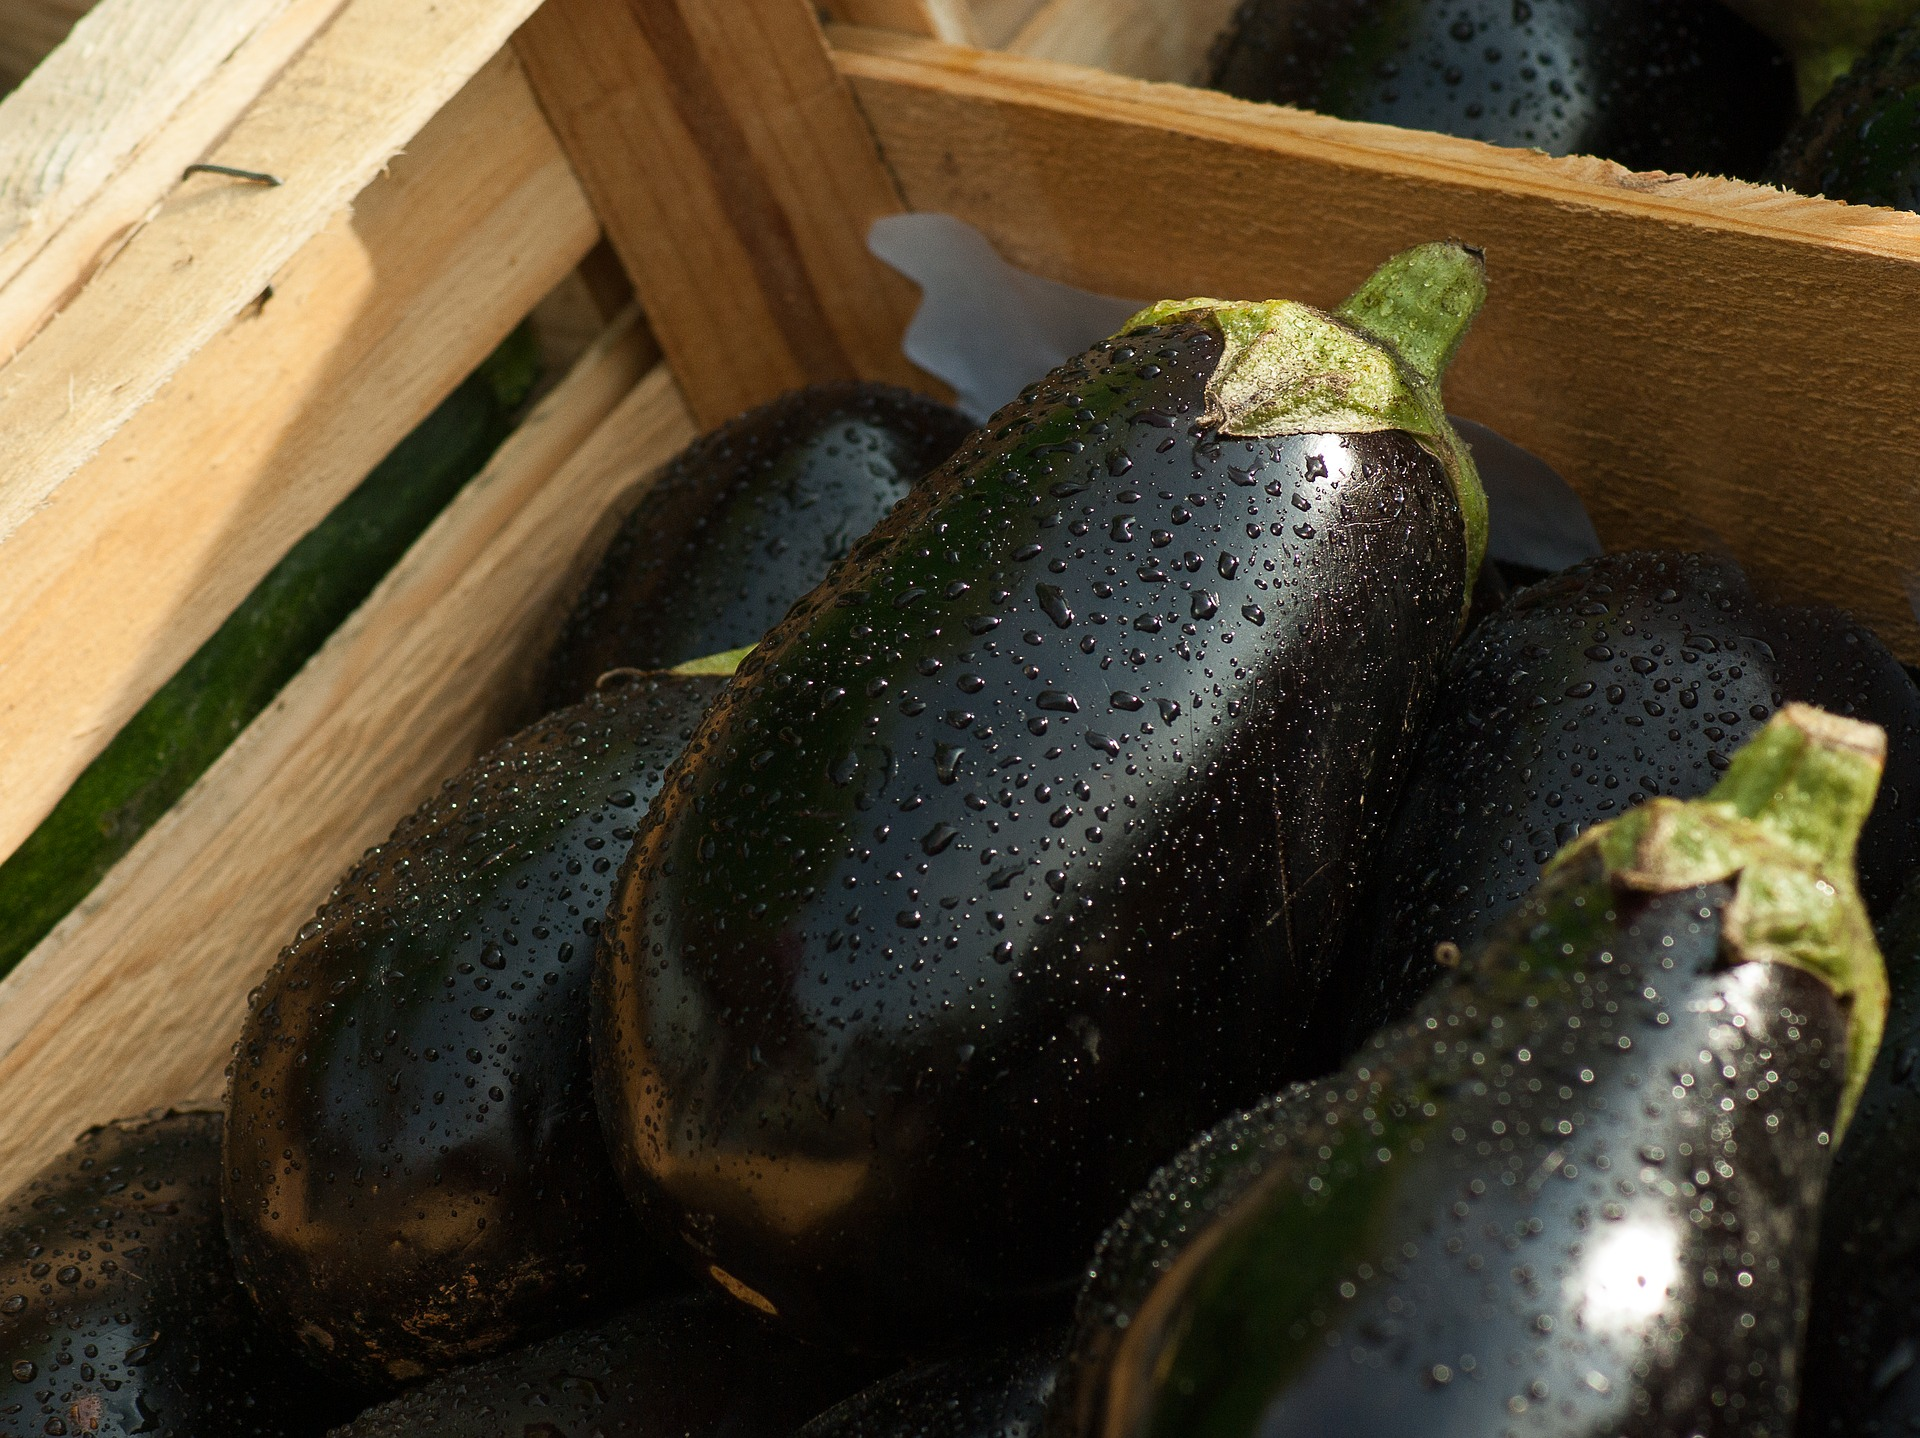 Image by Jacqueline Macou from Pixabay, wet eggplant stacked in a wooden crate at market